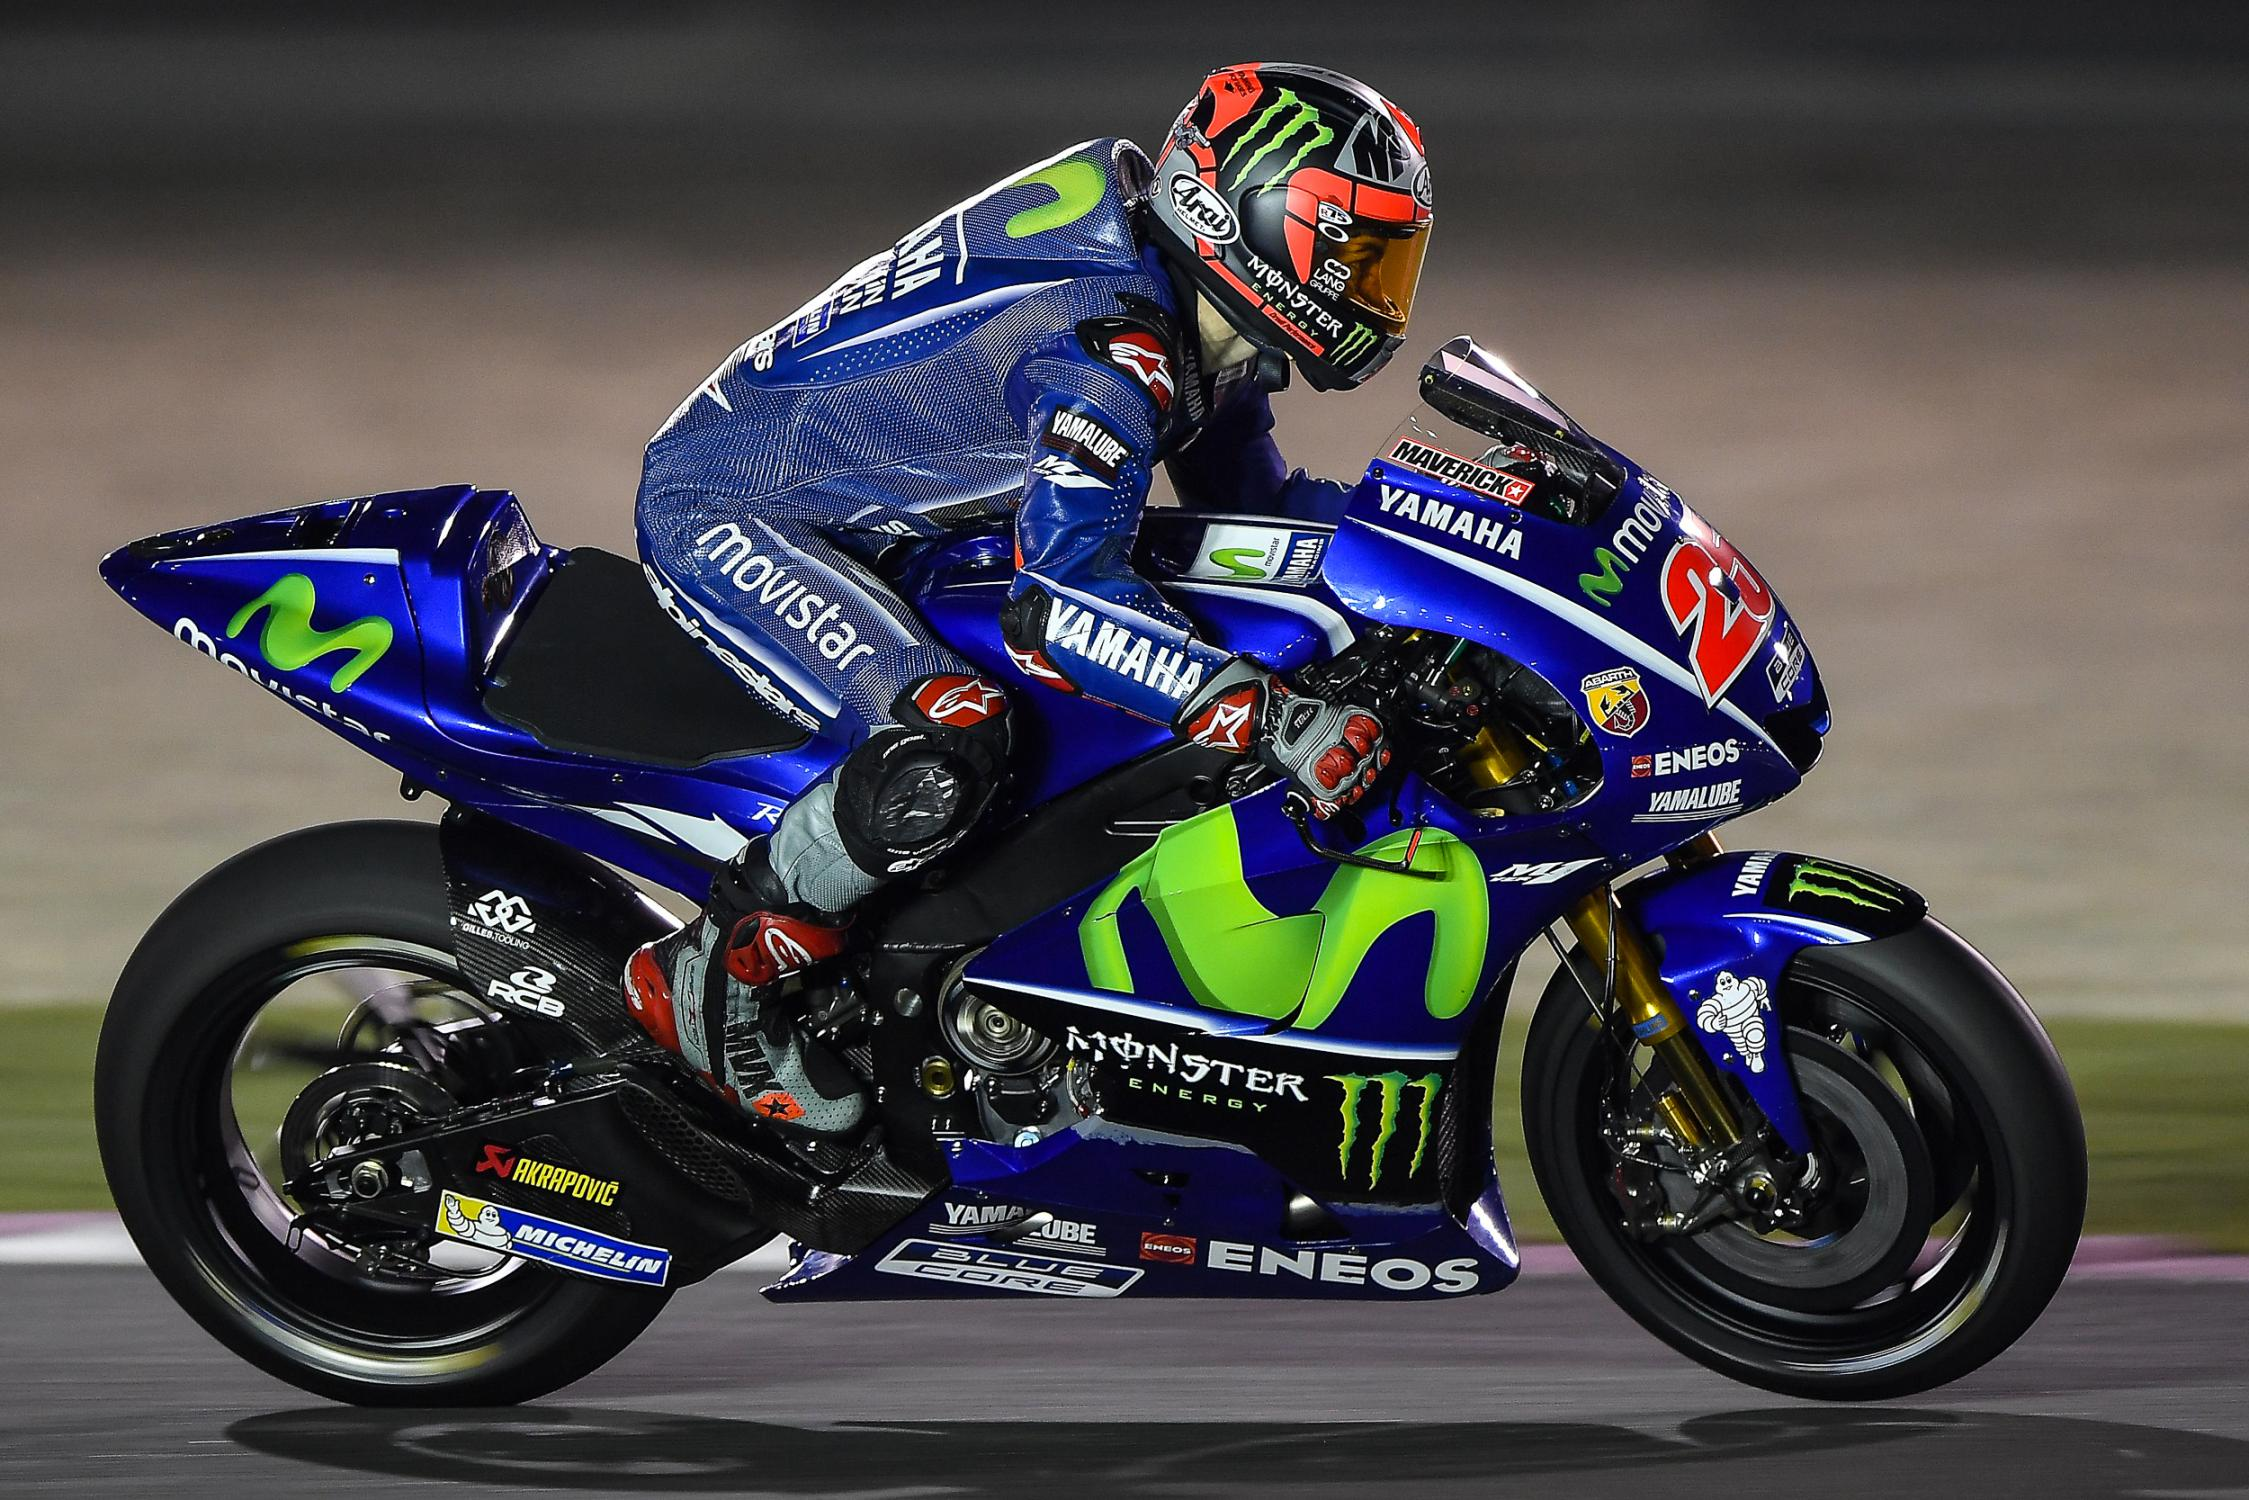 [MotoGP] Test Losail 25-maverick-vinales-espyfr_editorial_use_pictures_16-5.gallery_full_top_fullscreen